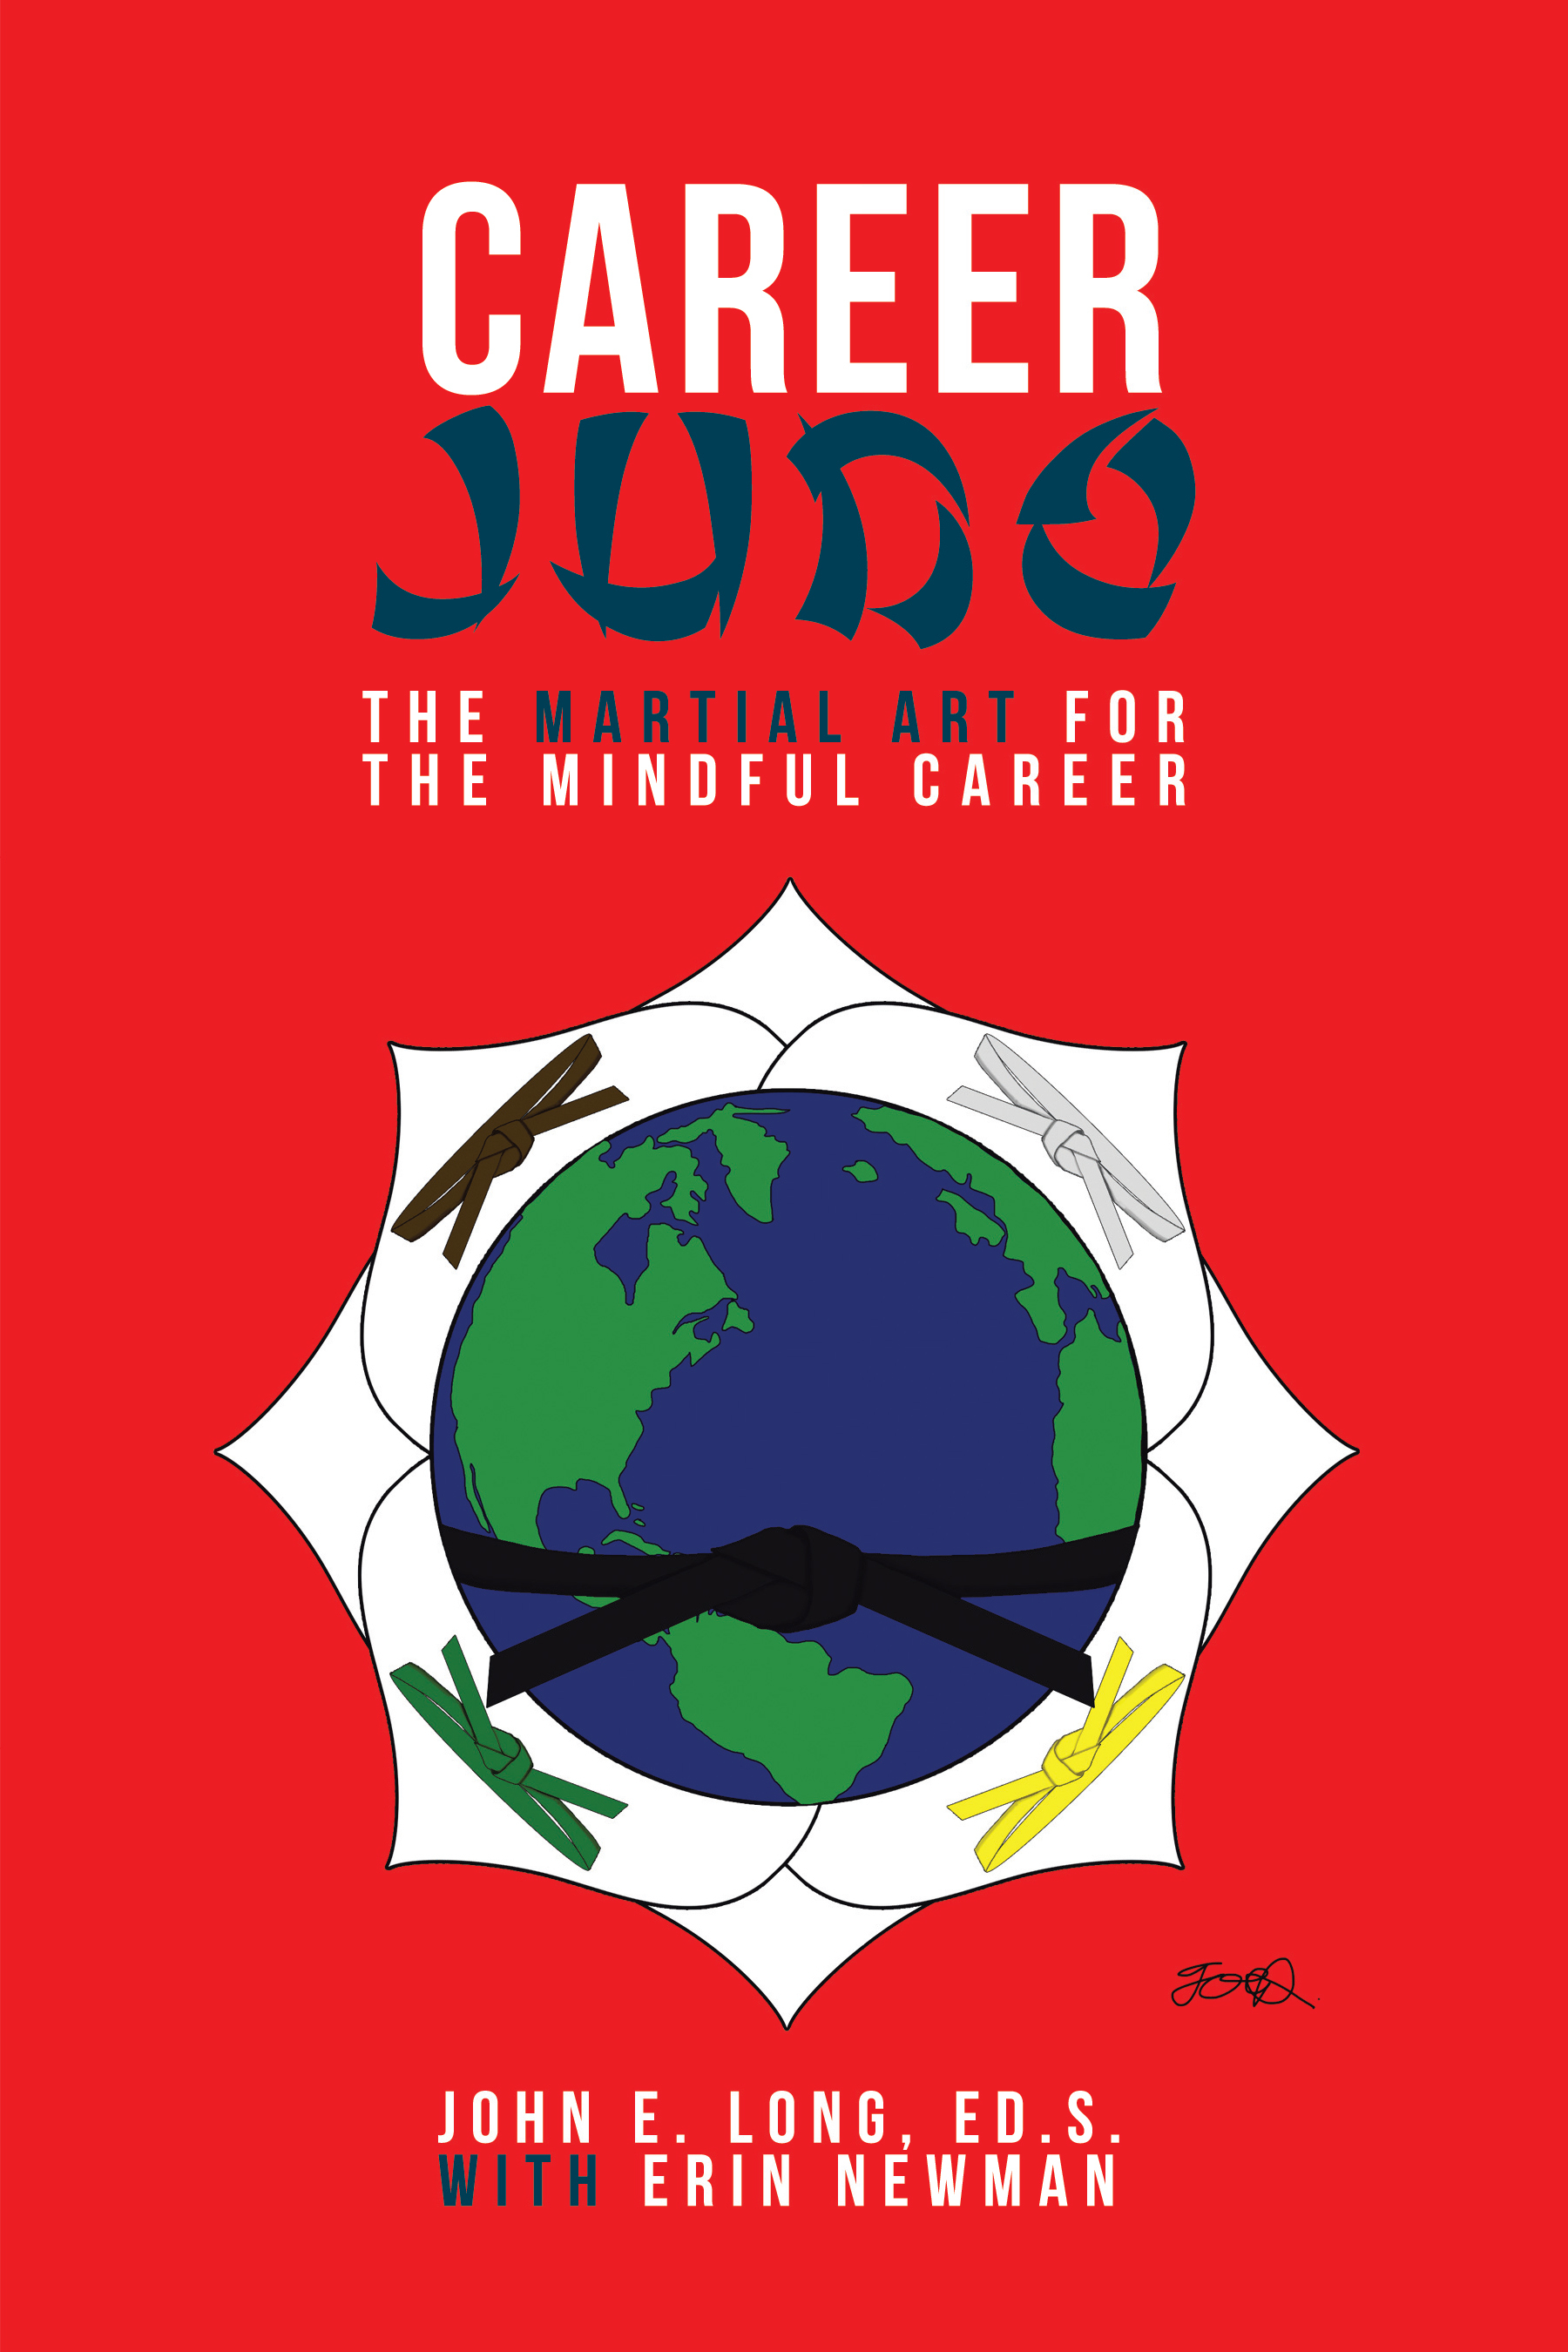 Career Judo - The Martial Art for the Mindful Career